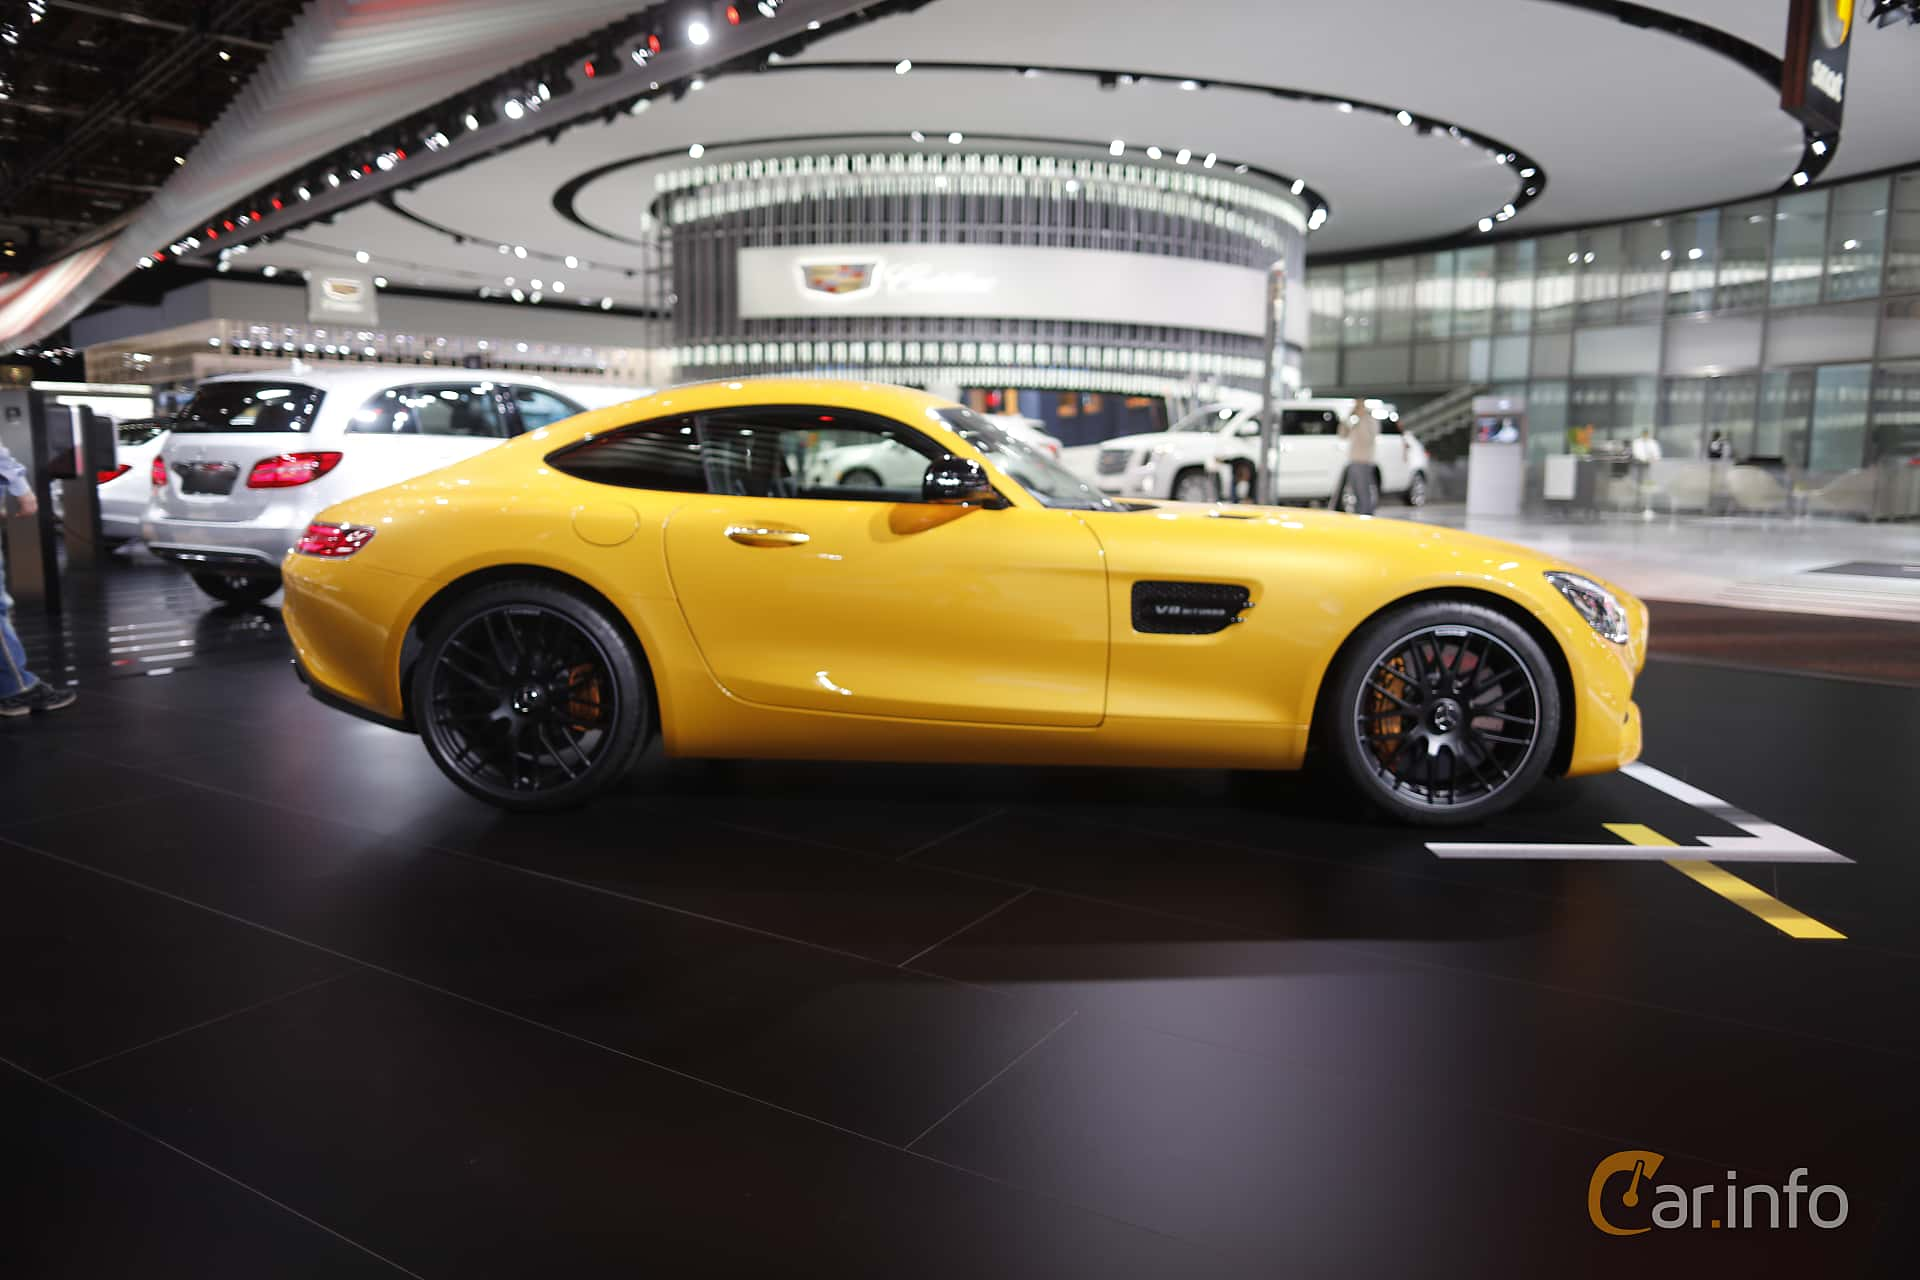 Sida av Mercedes-Benz AMG GT S 4.0 V8 AMG Speedshift DCT, 510ps, 2017 på North American International Auto Show 2017